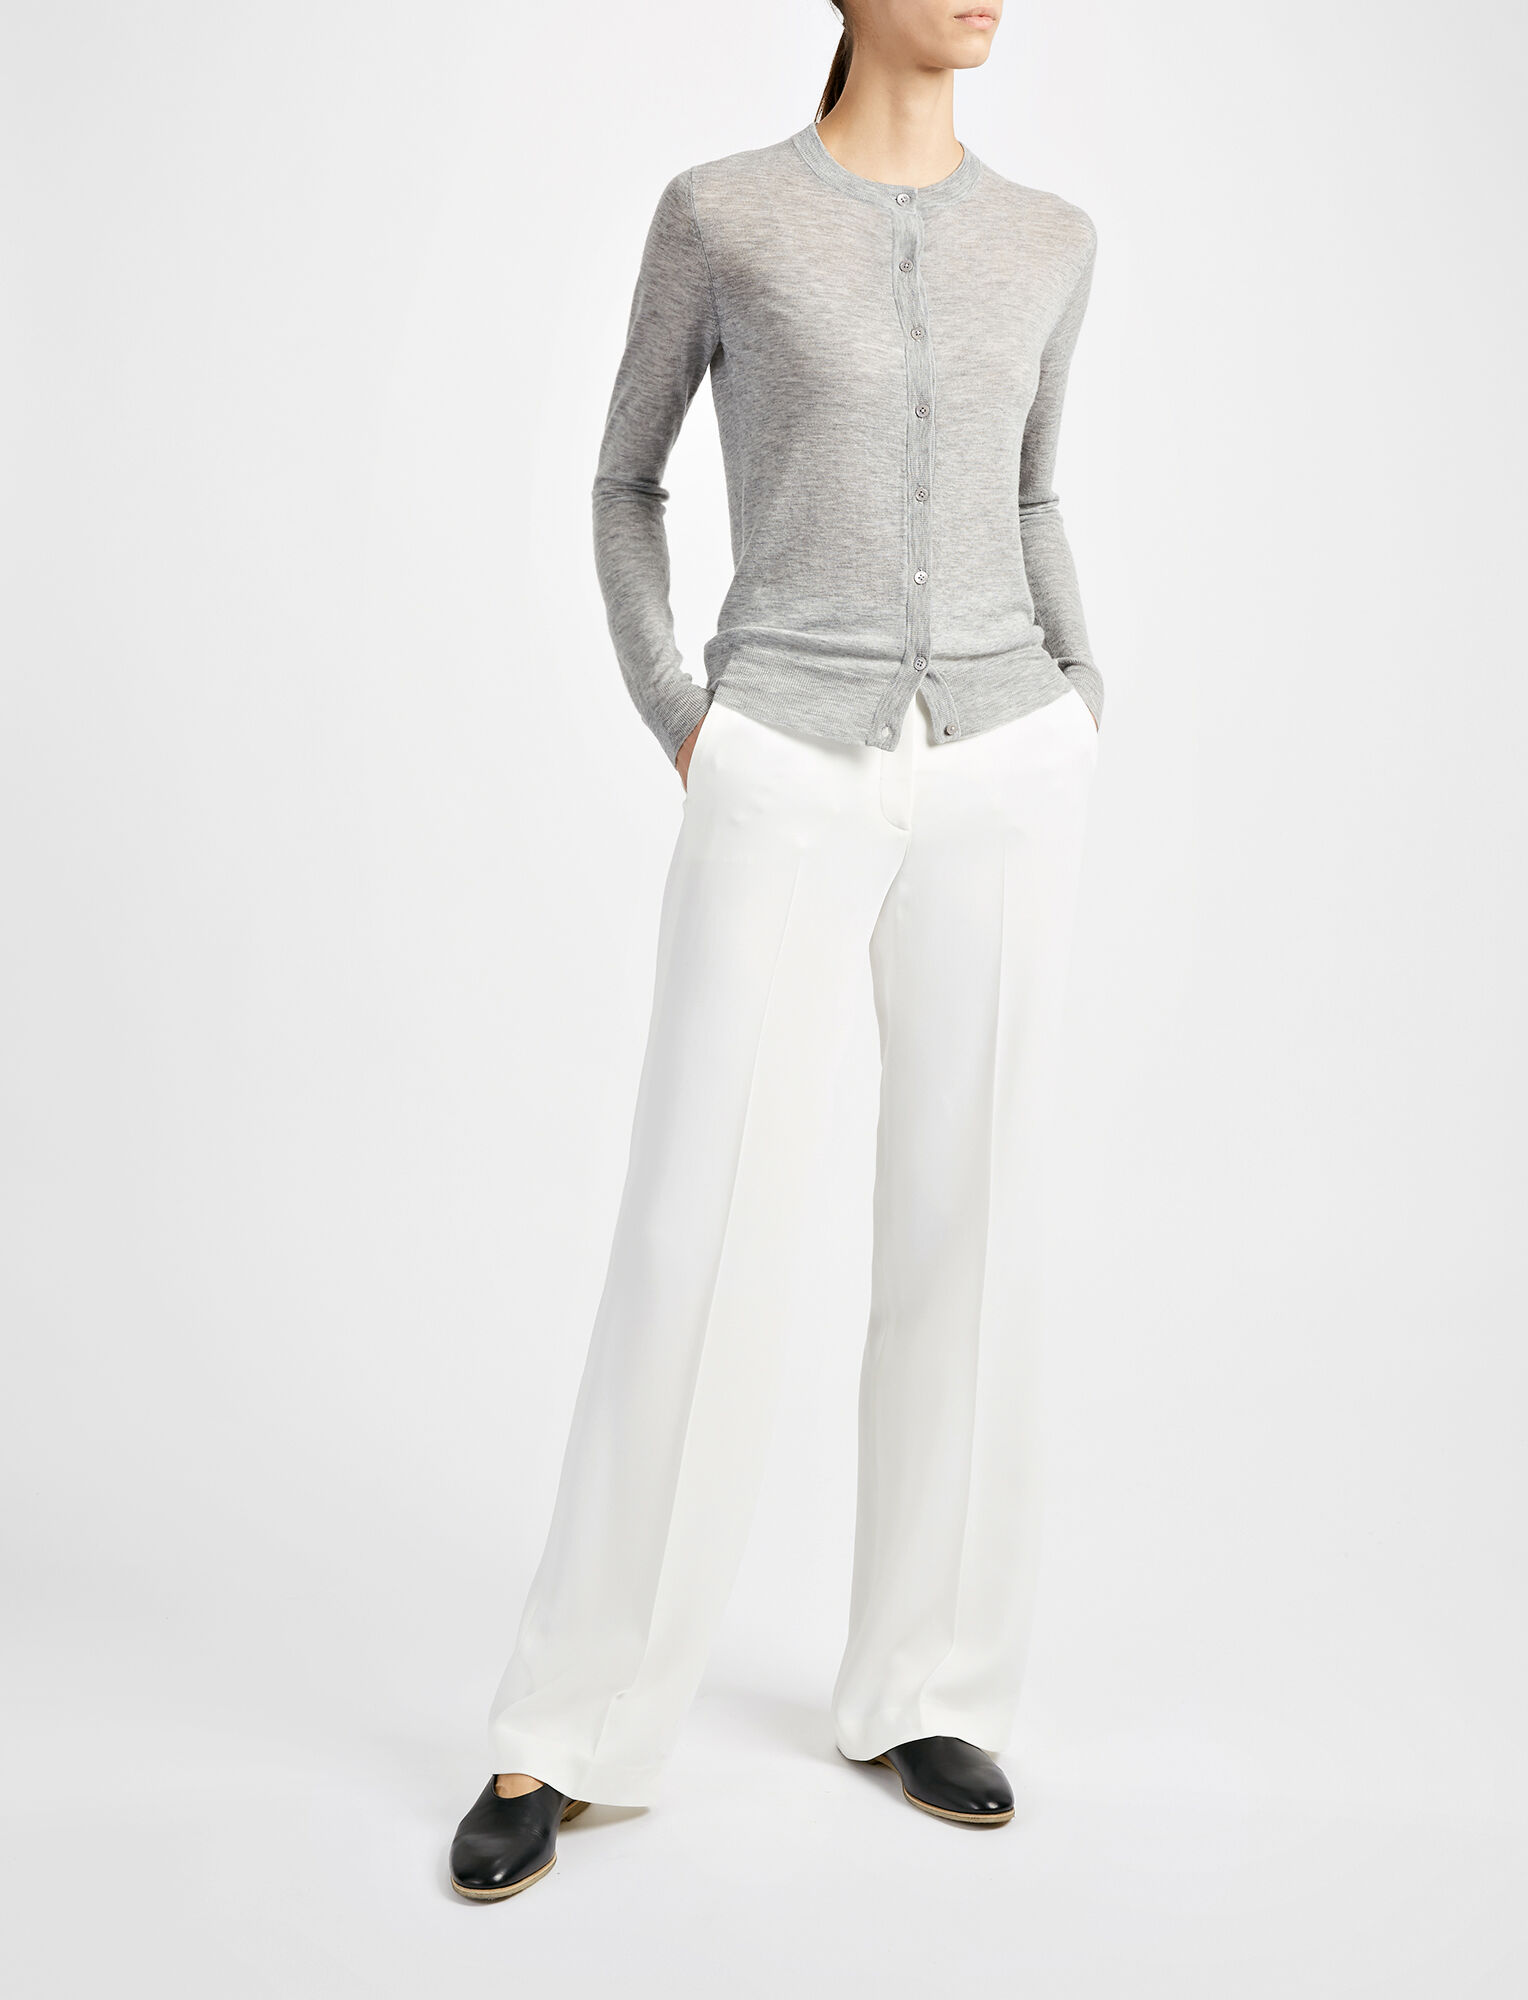 Joseph, Viscose Cady New Jagger Trouser, in BONE